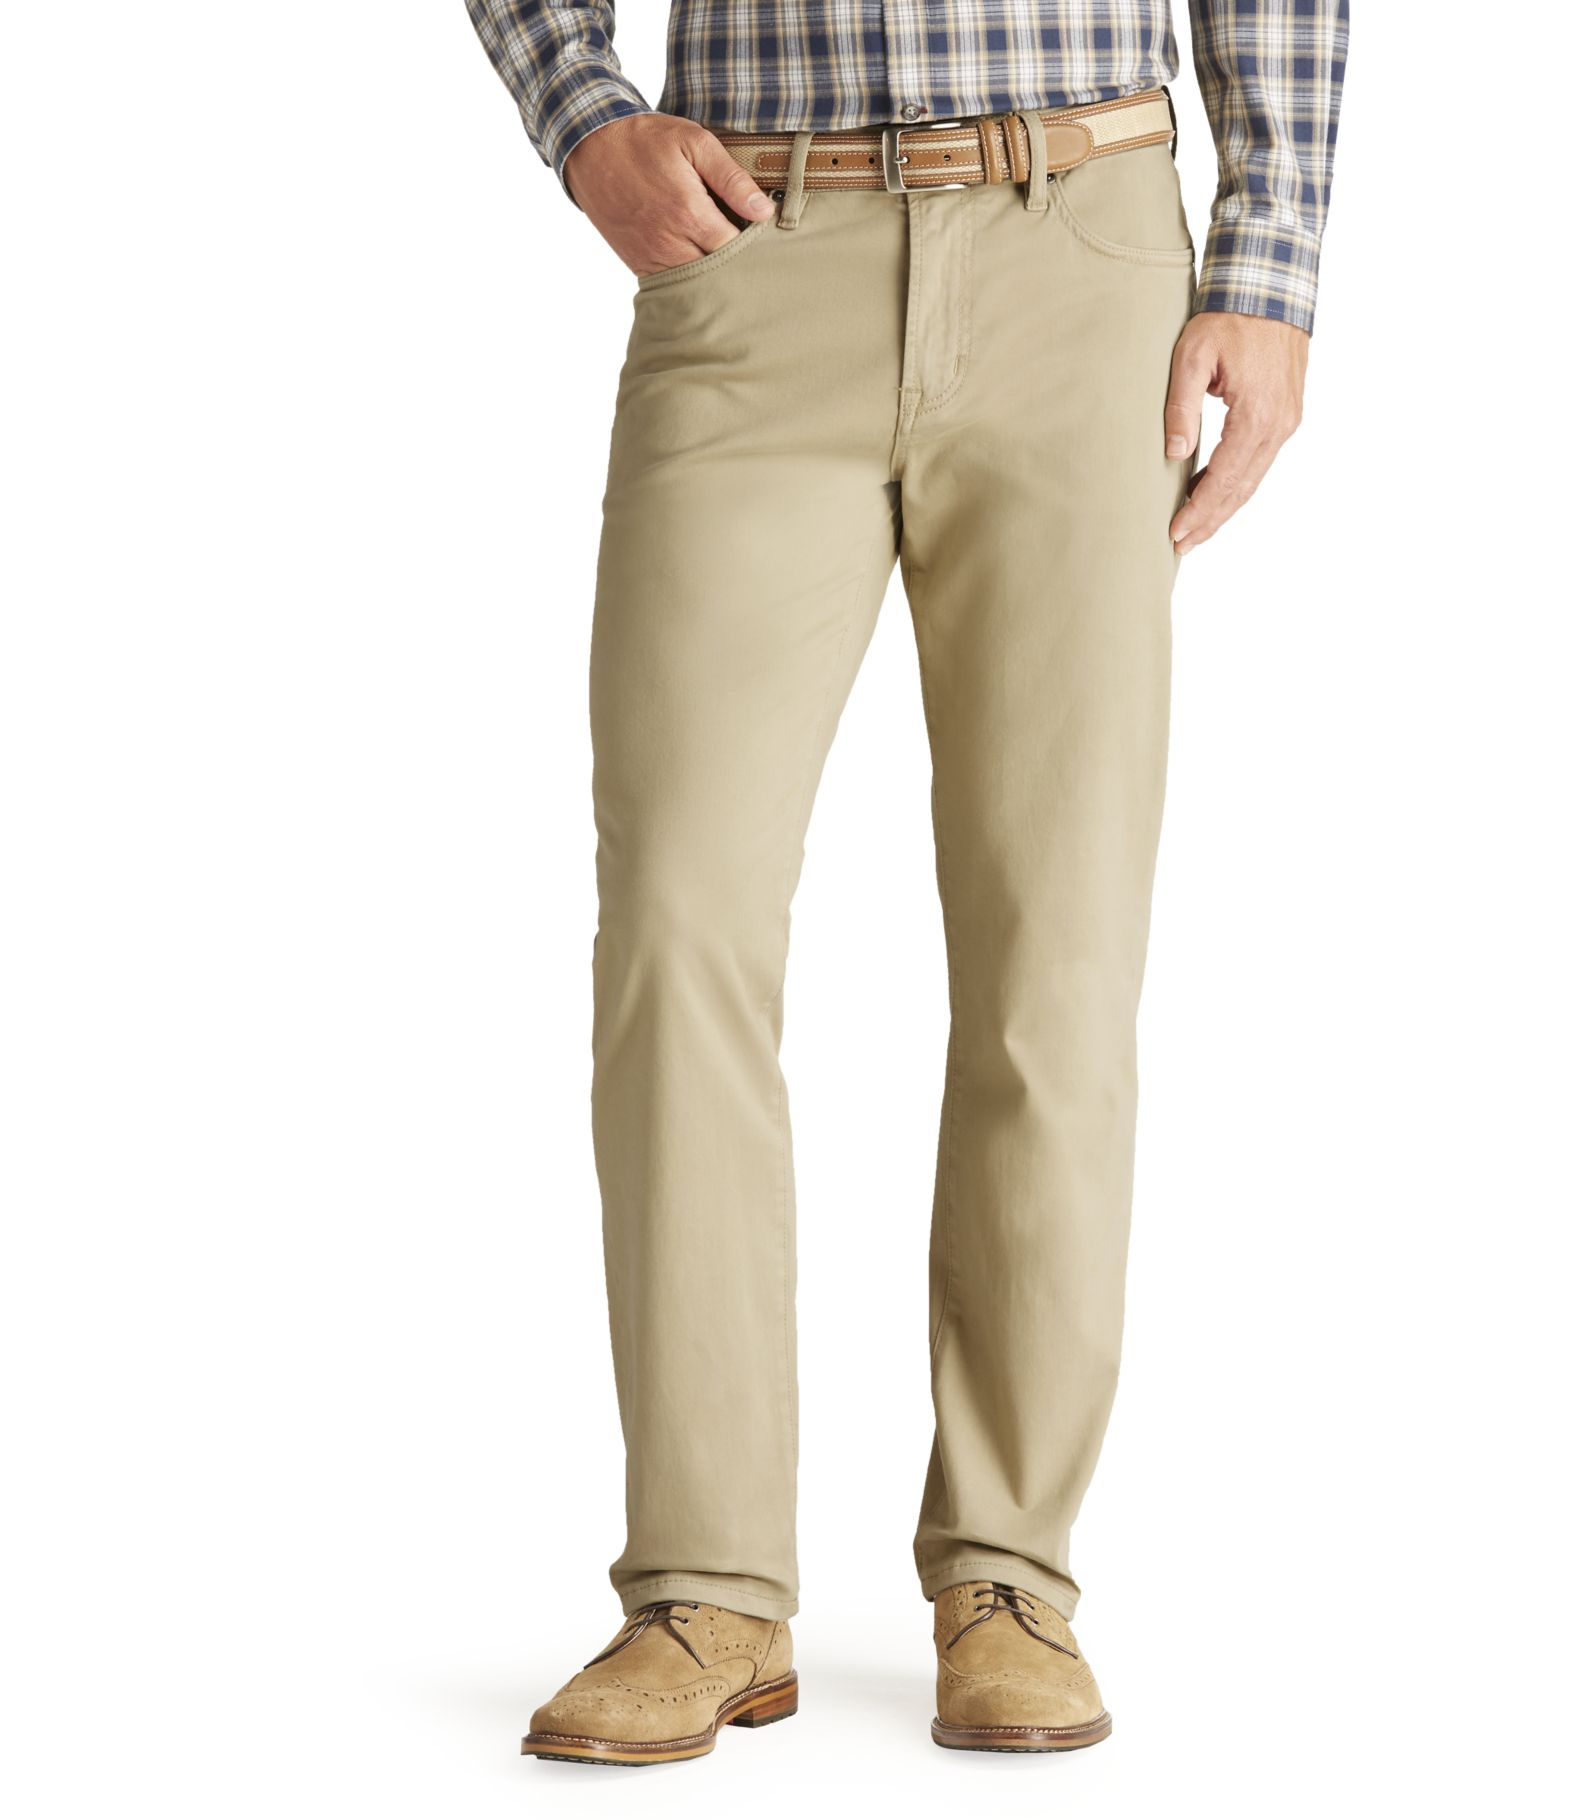 Cotton Pants | Men's Pants | JoS. A. Bank Clothiers